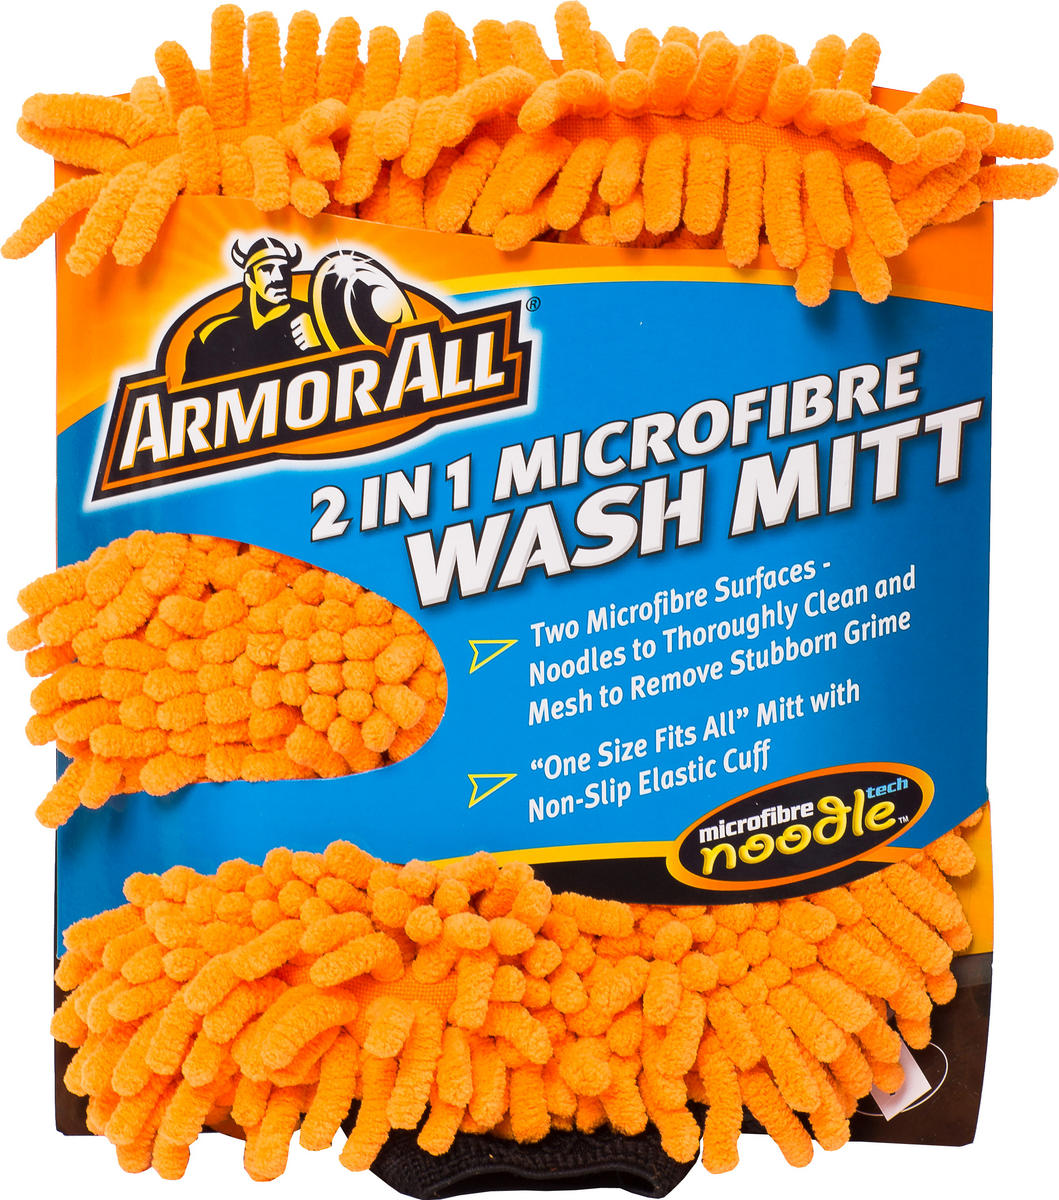 Armorall CLO40005EN Car Cleaning 2 In 1 Microfibre Noodle Wash Mitt Single